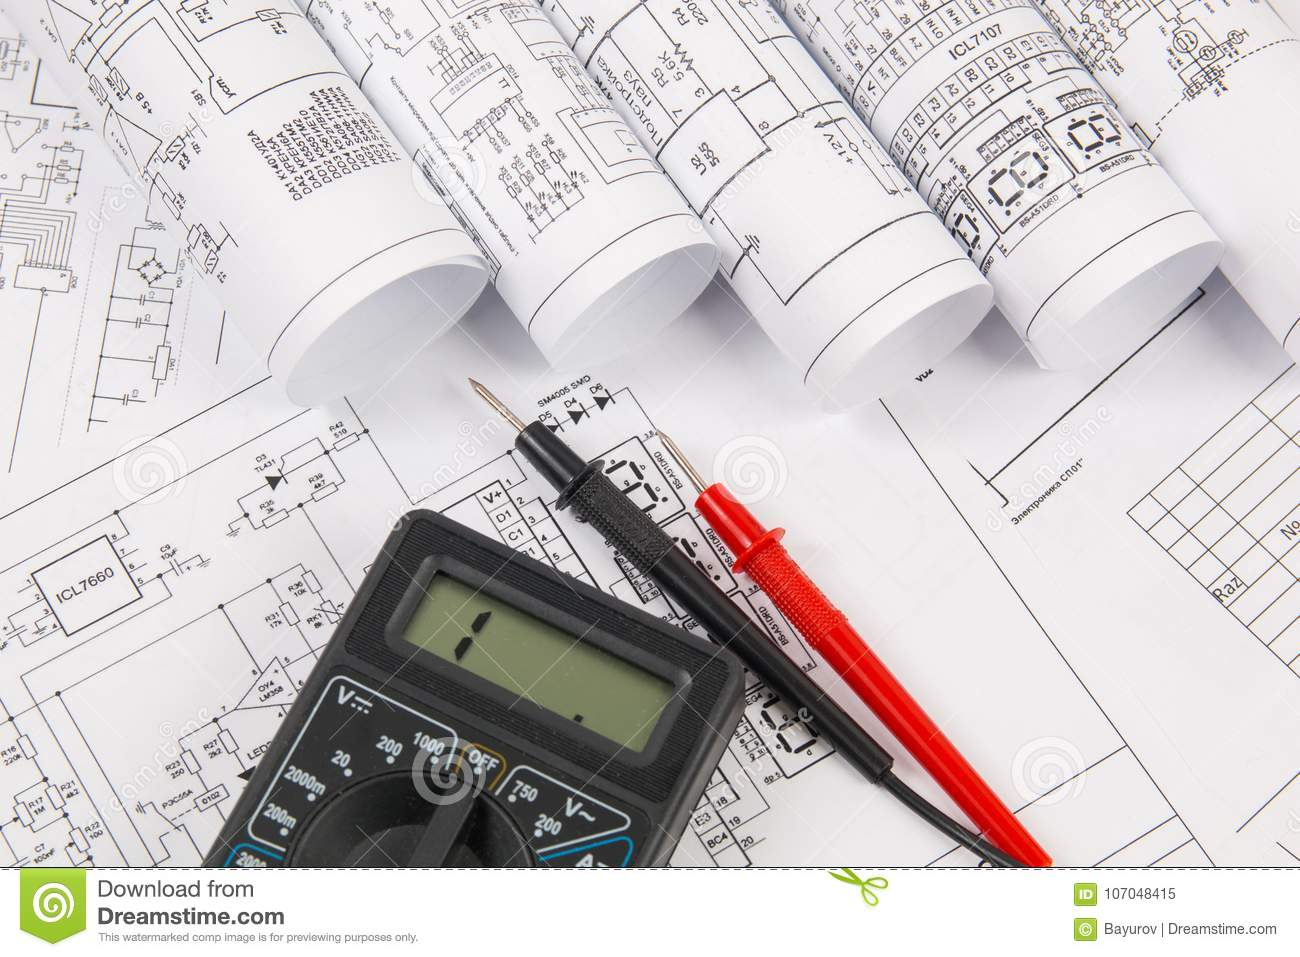 Electrical Engineering Drawings And Digital Multimeter Stock Image E Plan